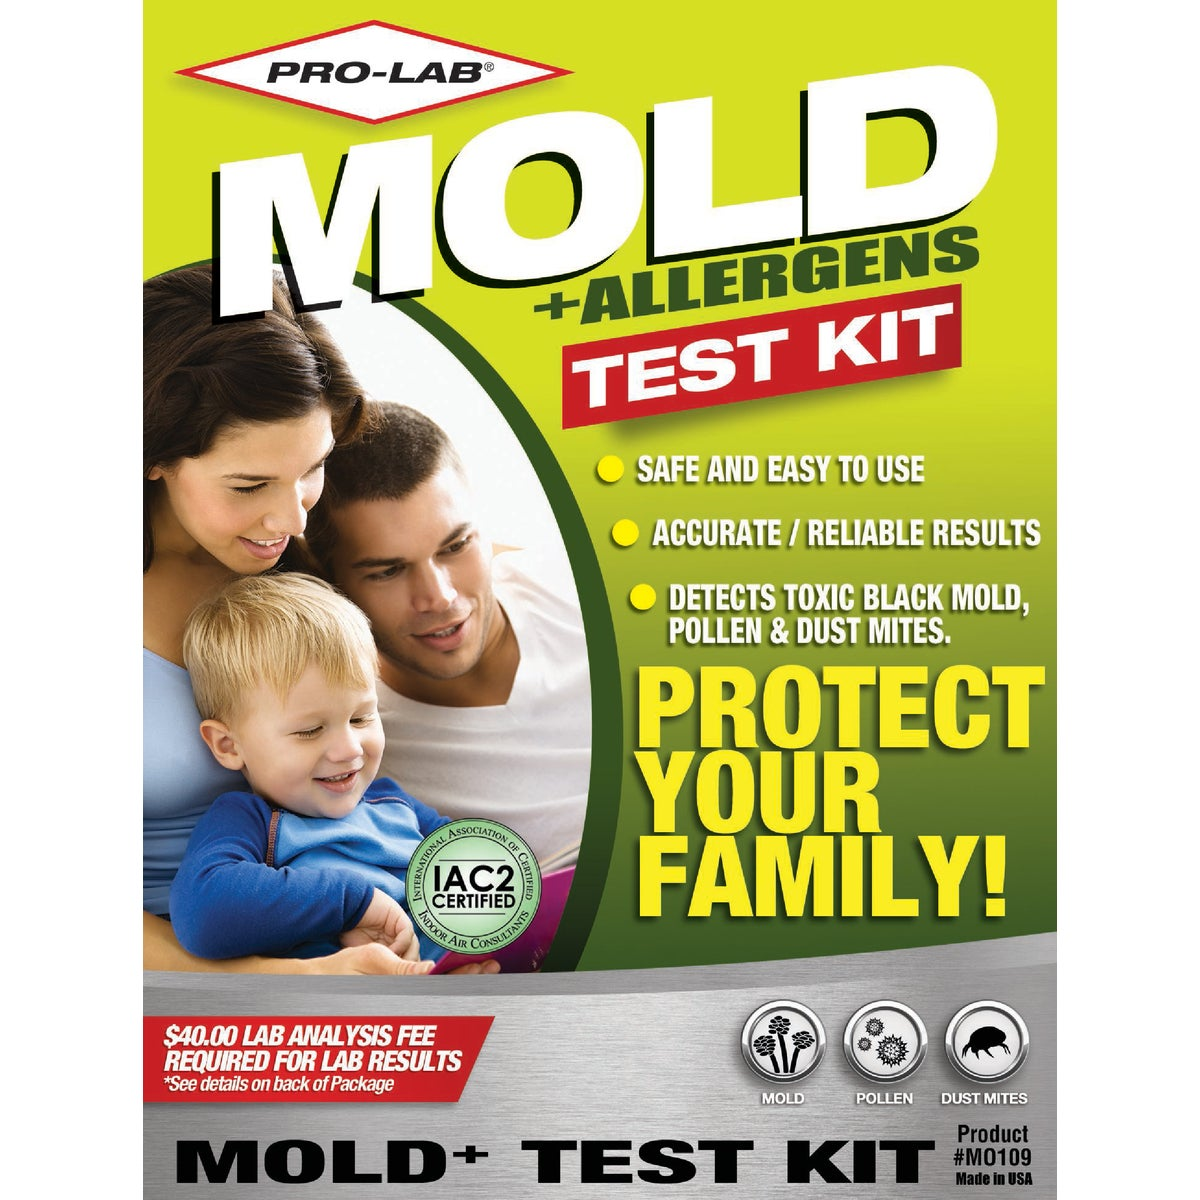 MOLD TEST KIT - MO109 by Pro Lab Inc